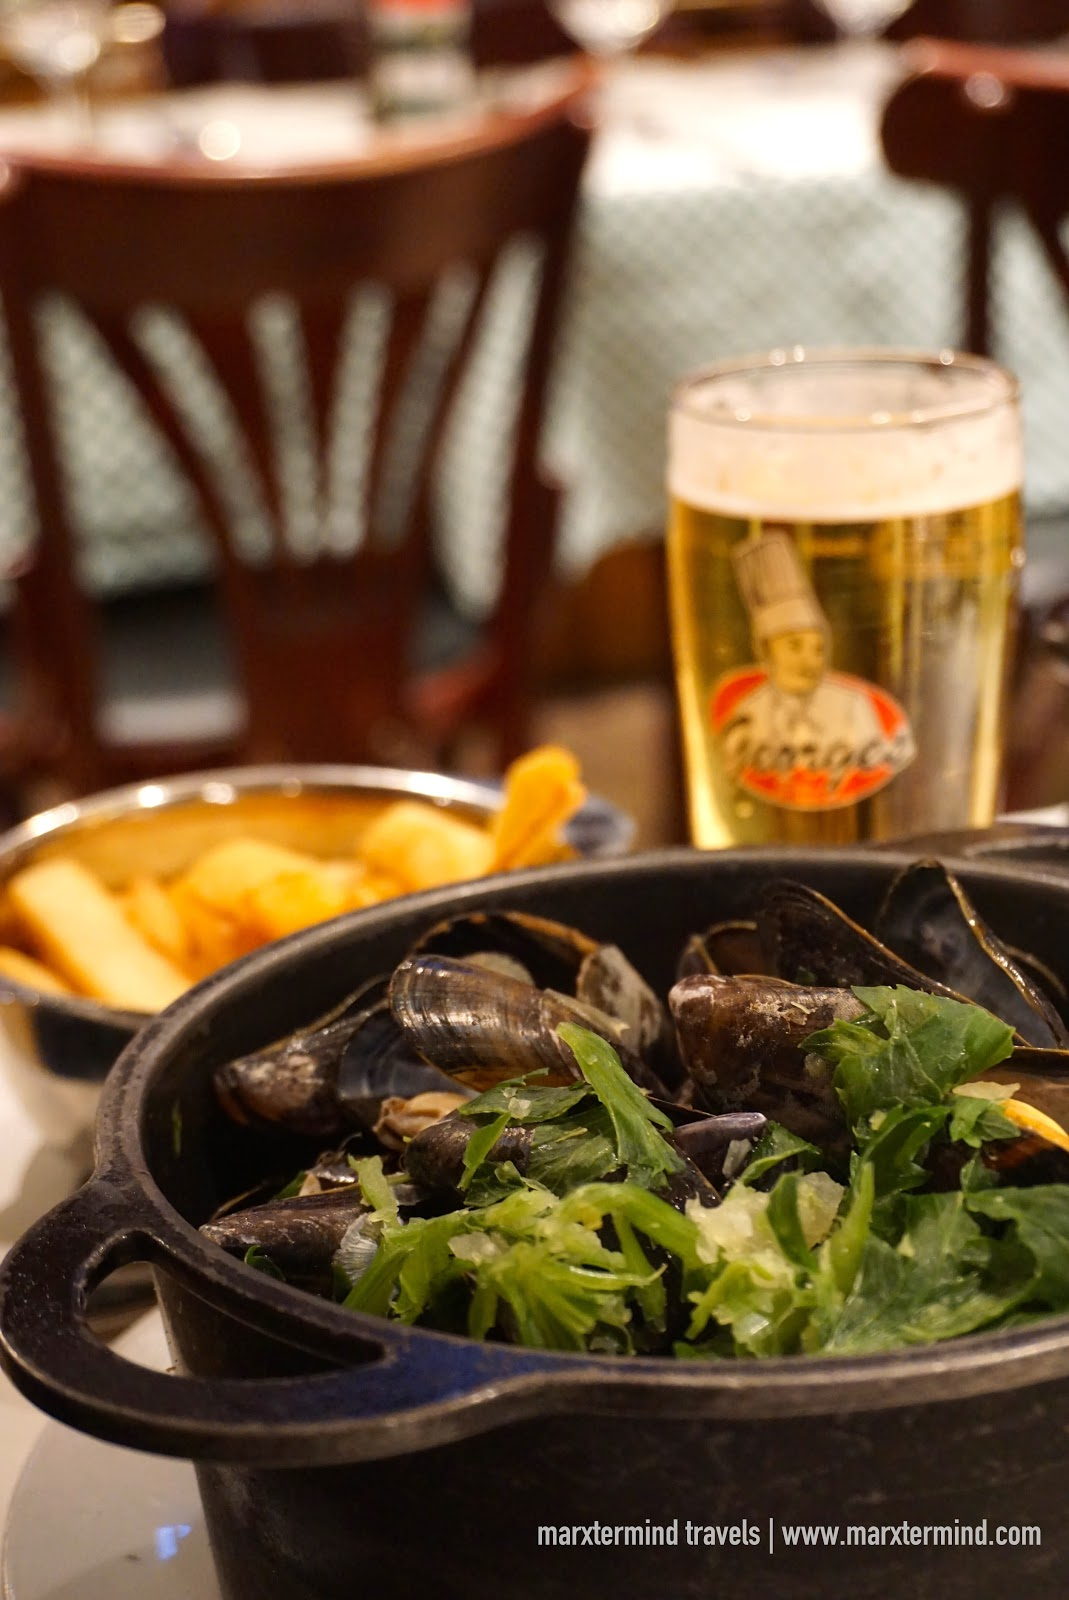 Beer, fries and mussels at Chez Leon